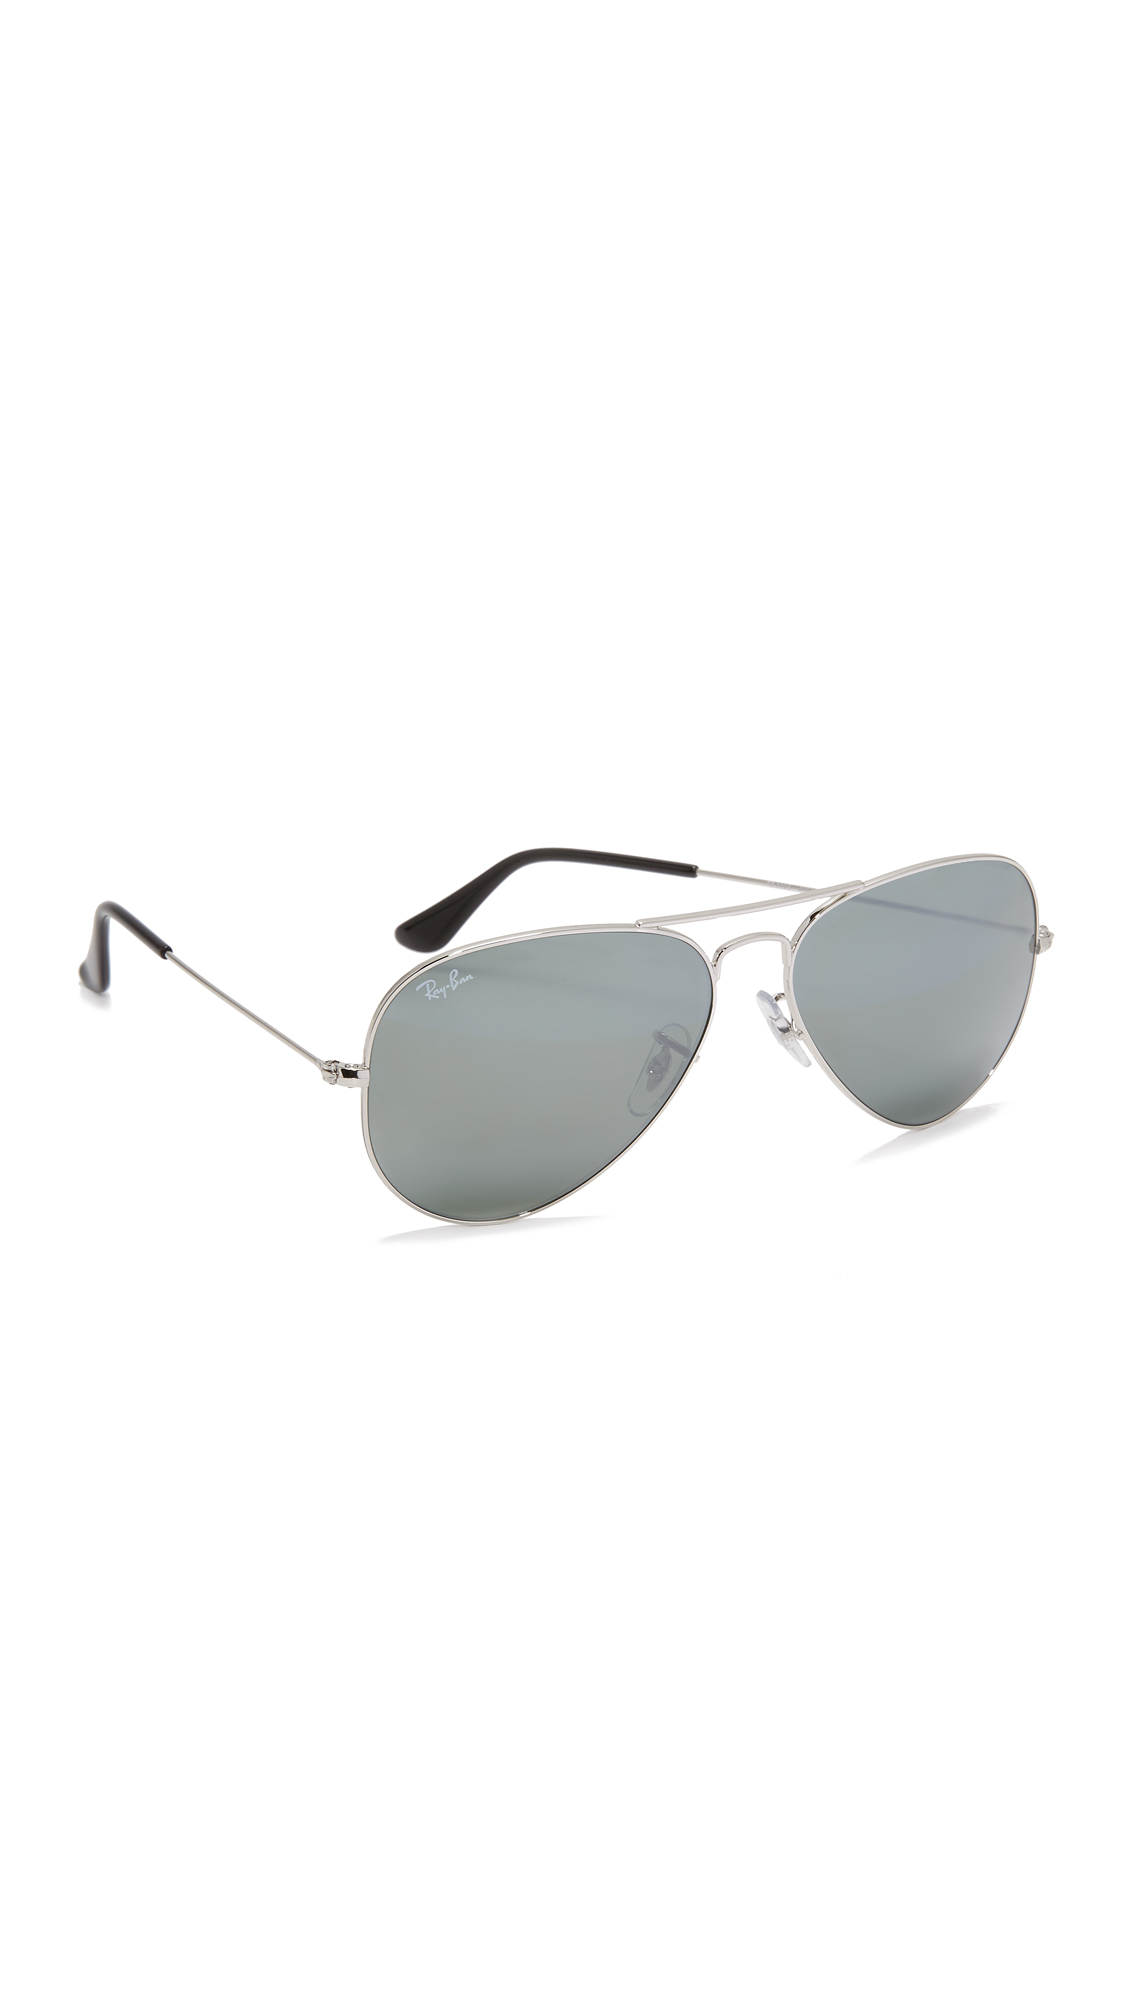 9a30a6878c ... switzerland best ray ban prices ray ban oversized clubmaster shopbop  ccfd6 ffe7e